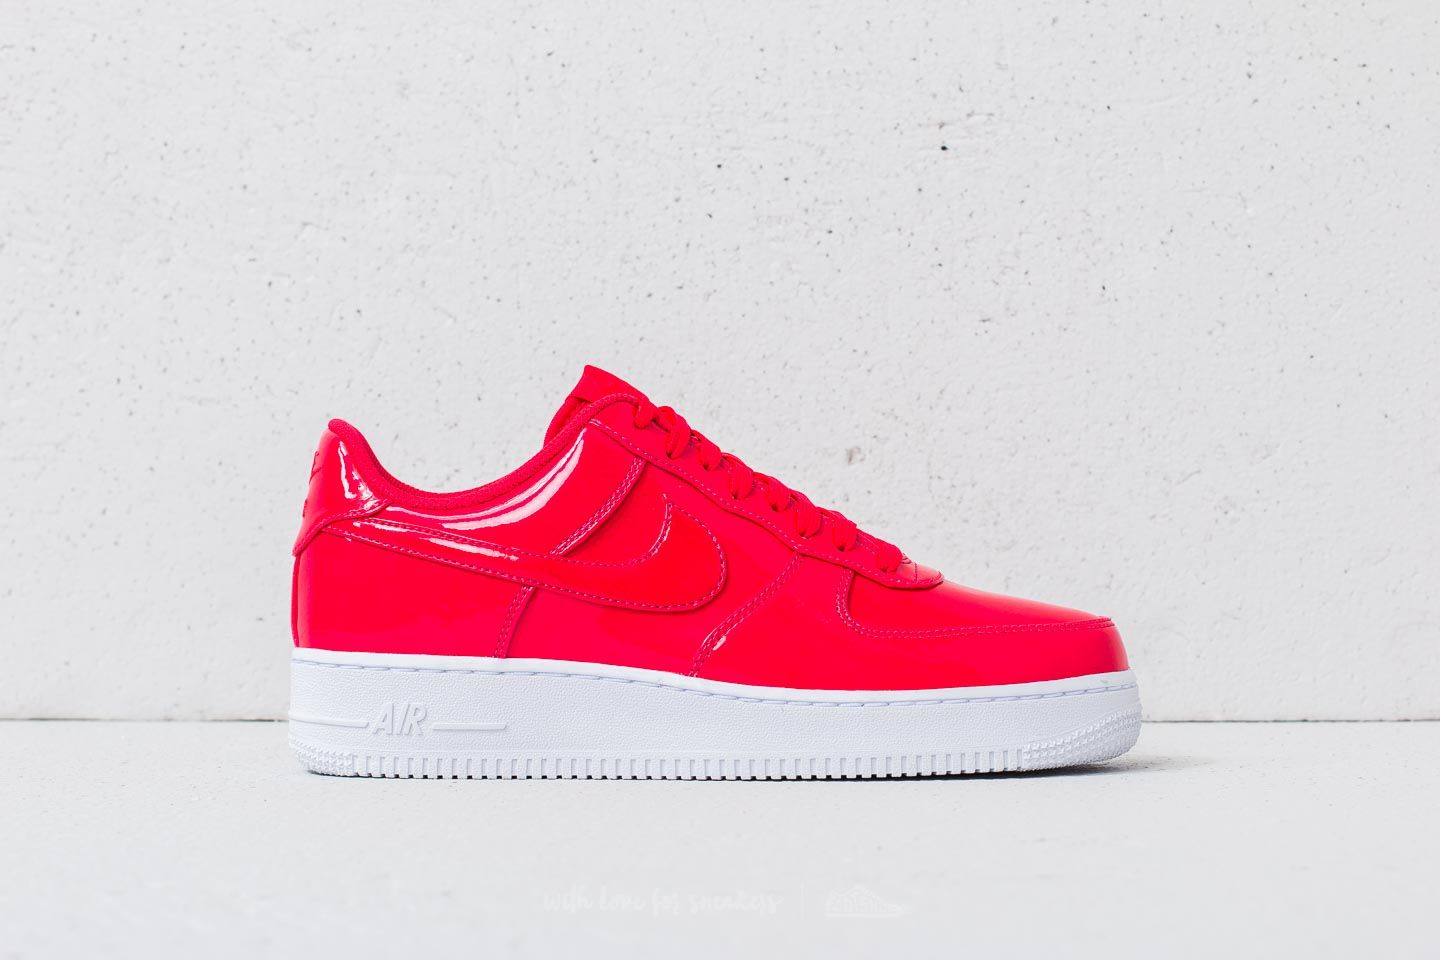 new style fad7b 6d91b Nike Air Force 1 07 LV8 UV Siren Red Siren Red-White at